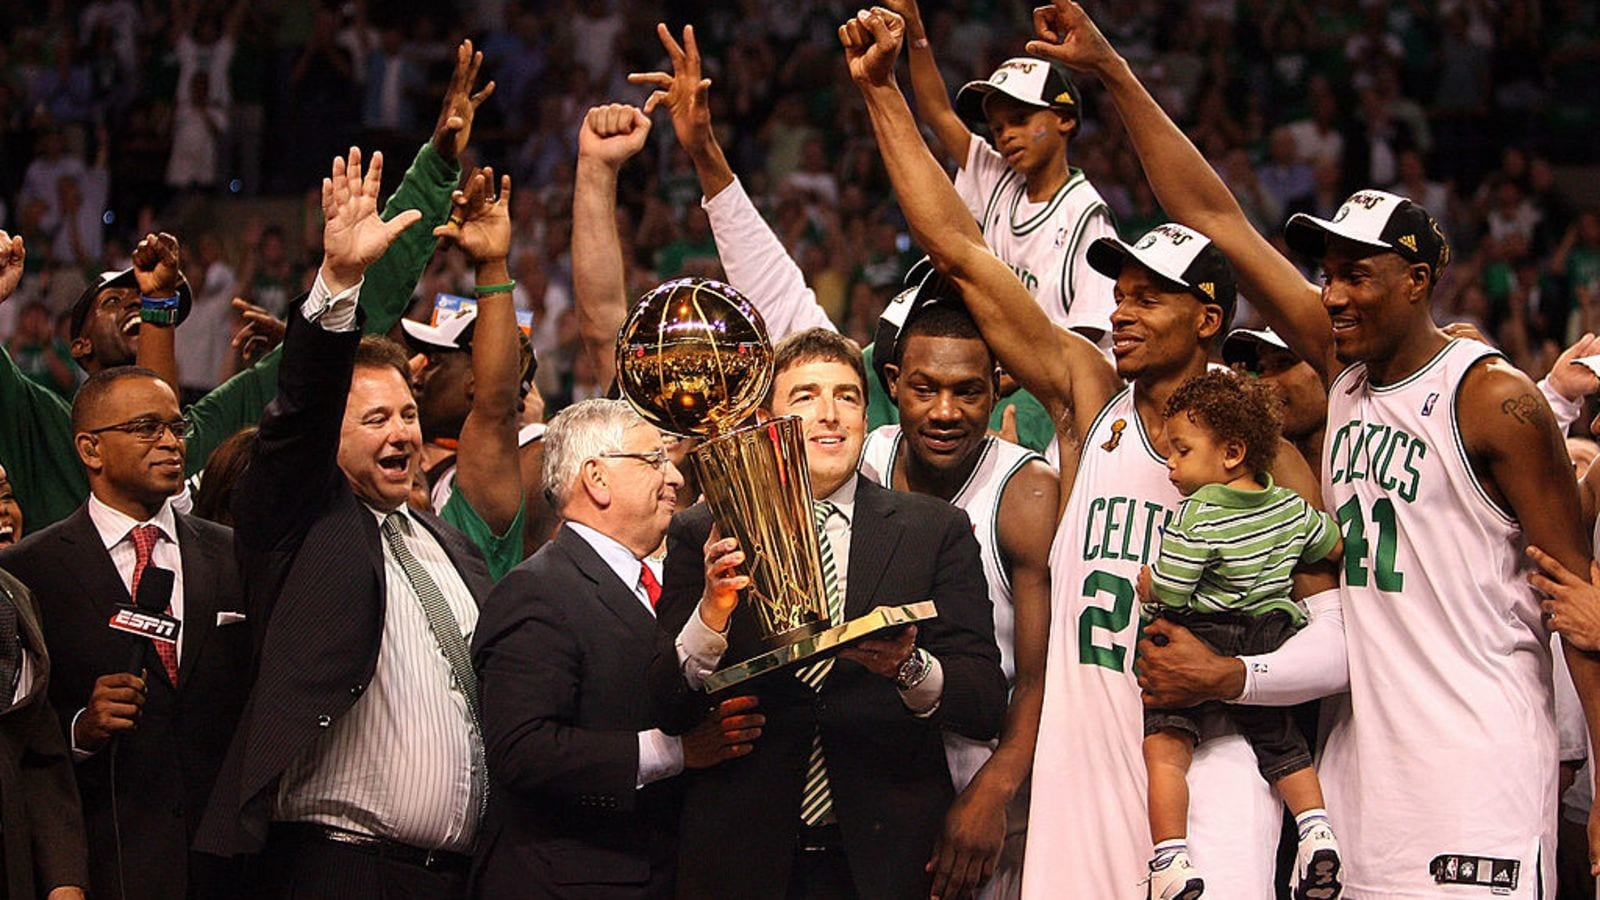 2008 NBA Finals Flashback: Celtics Win Number 17 Against Lakers